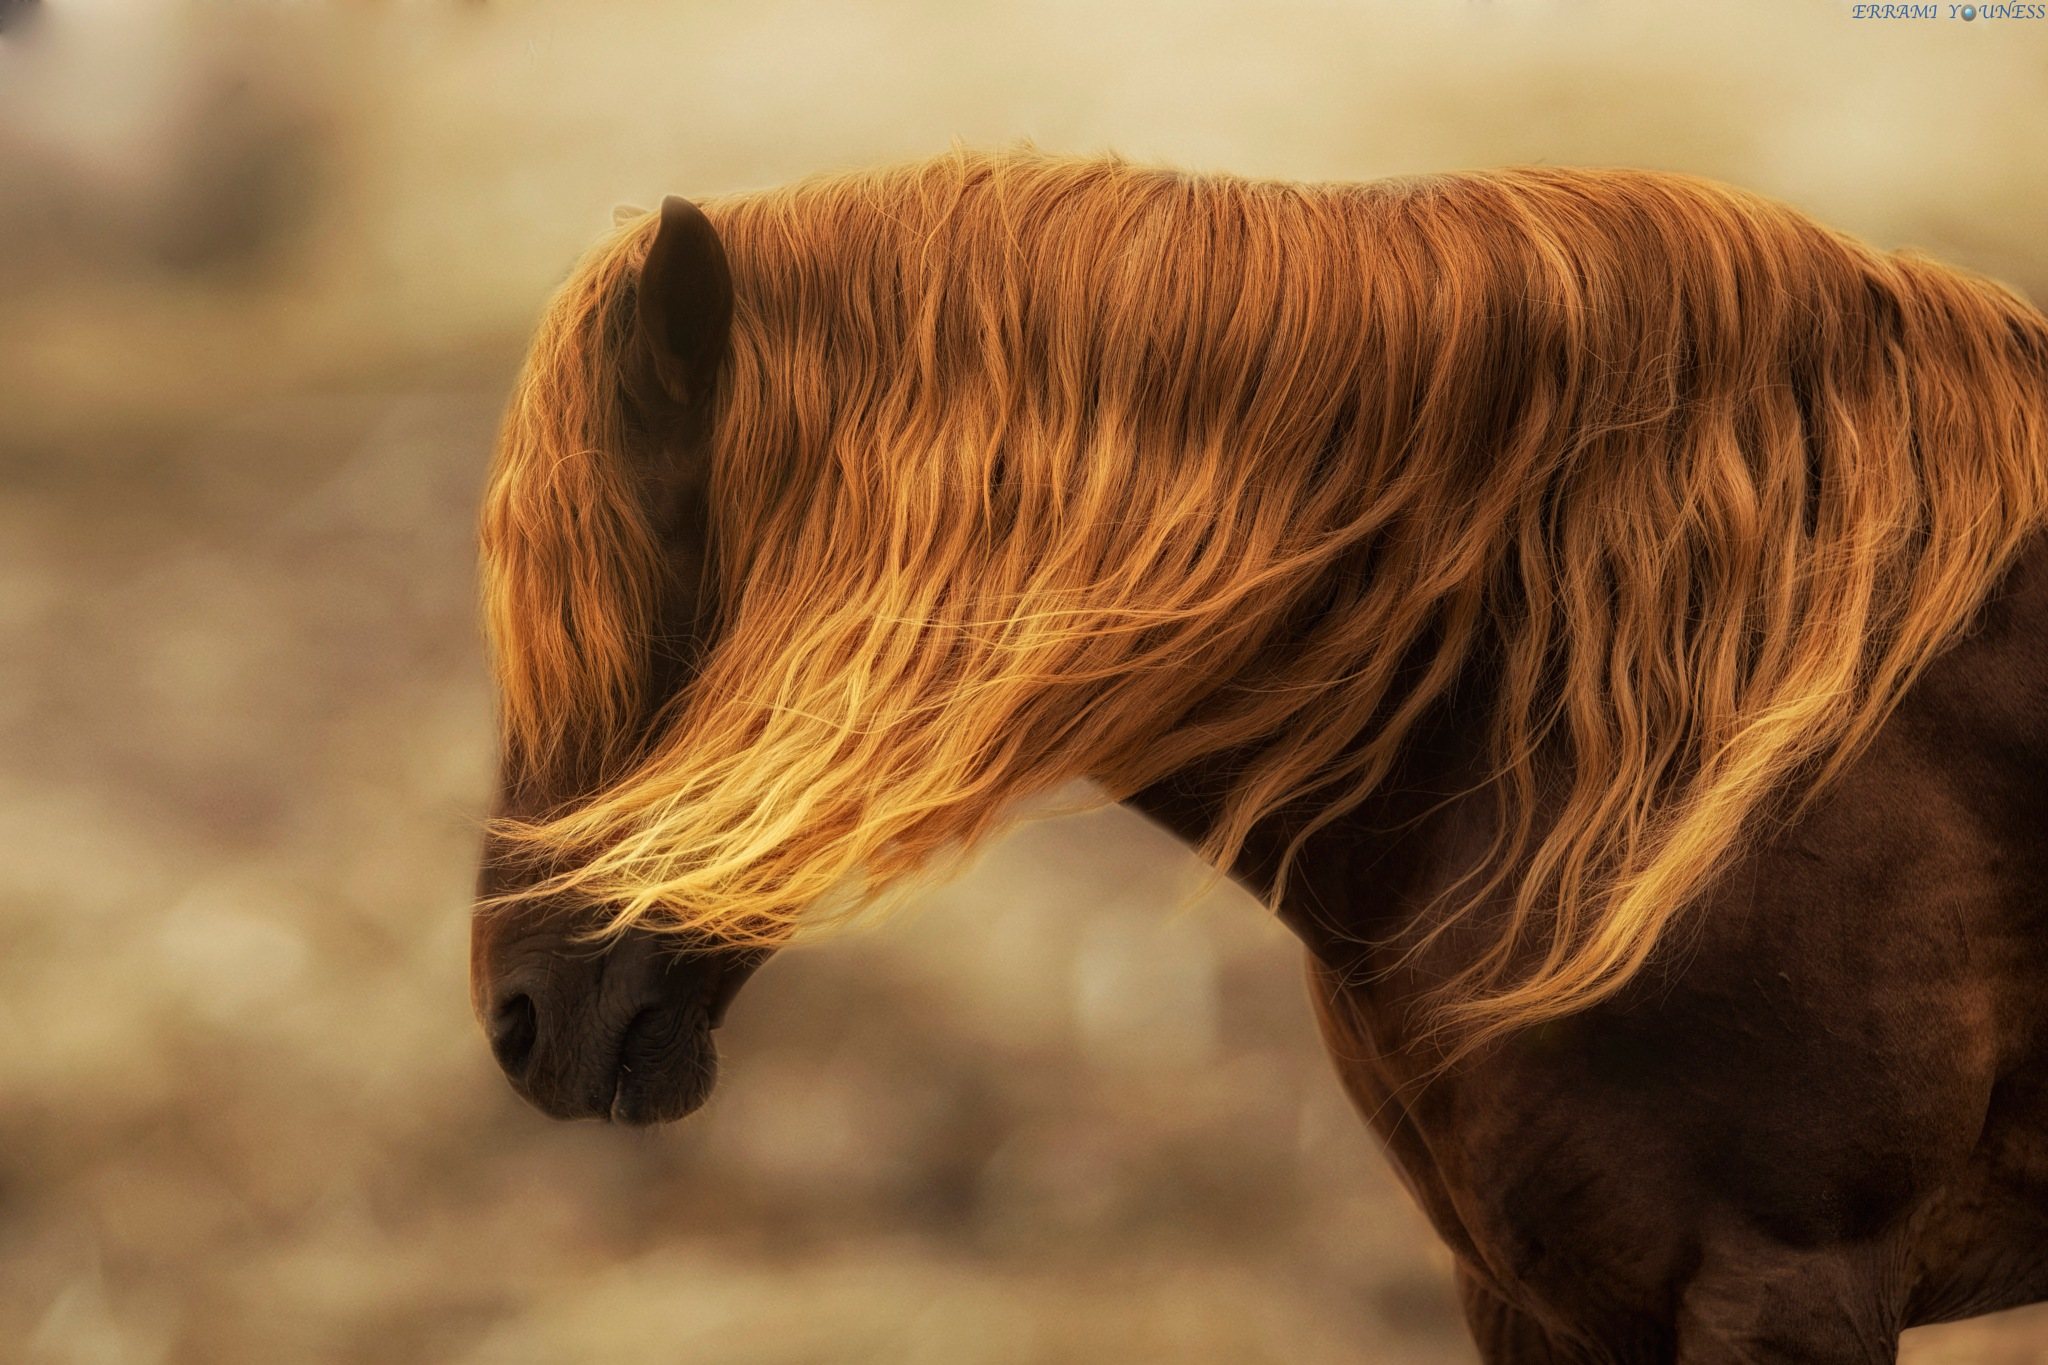 Glamour handsome Horse by Errami Youness